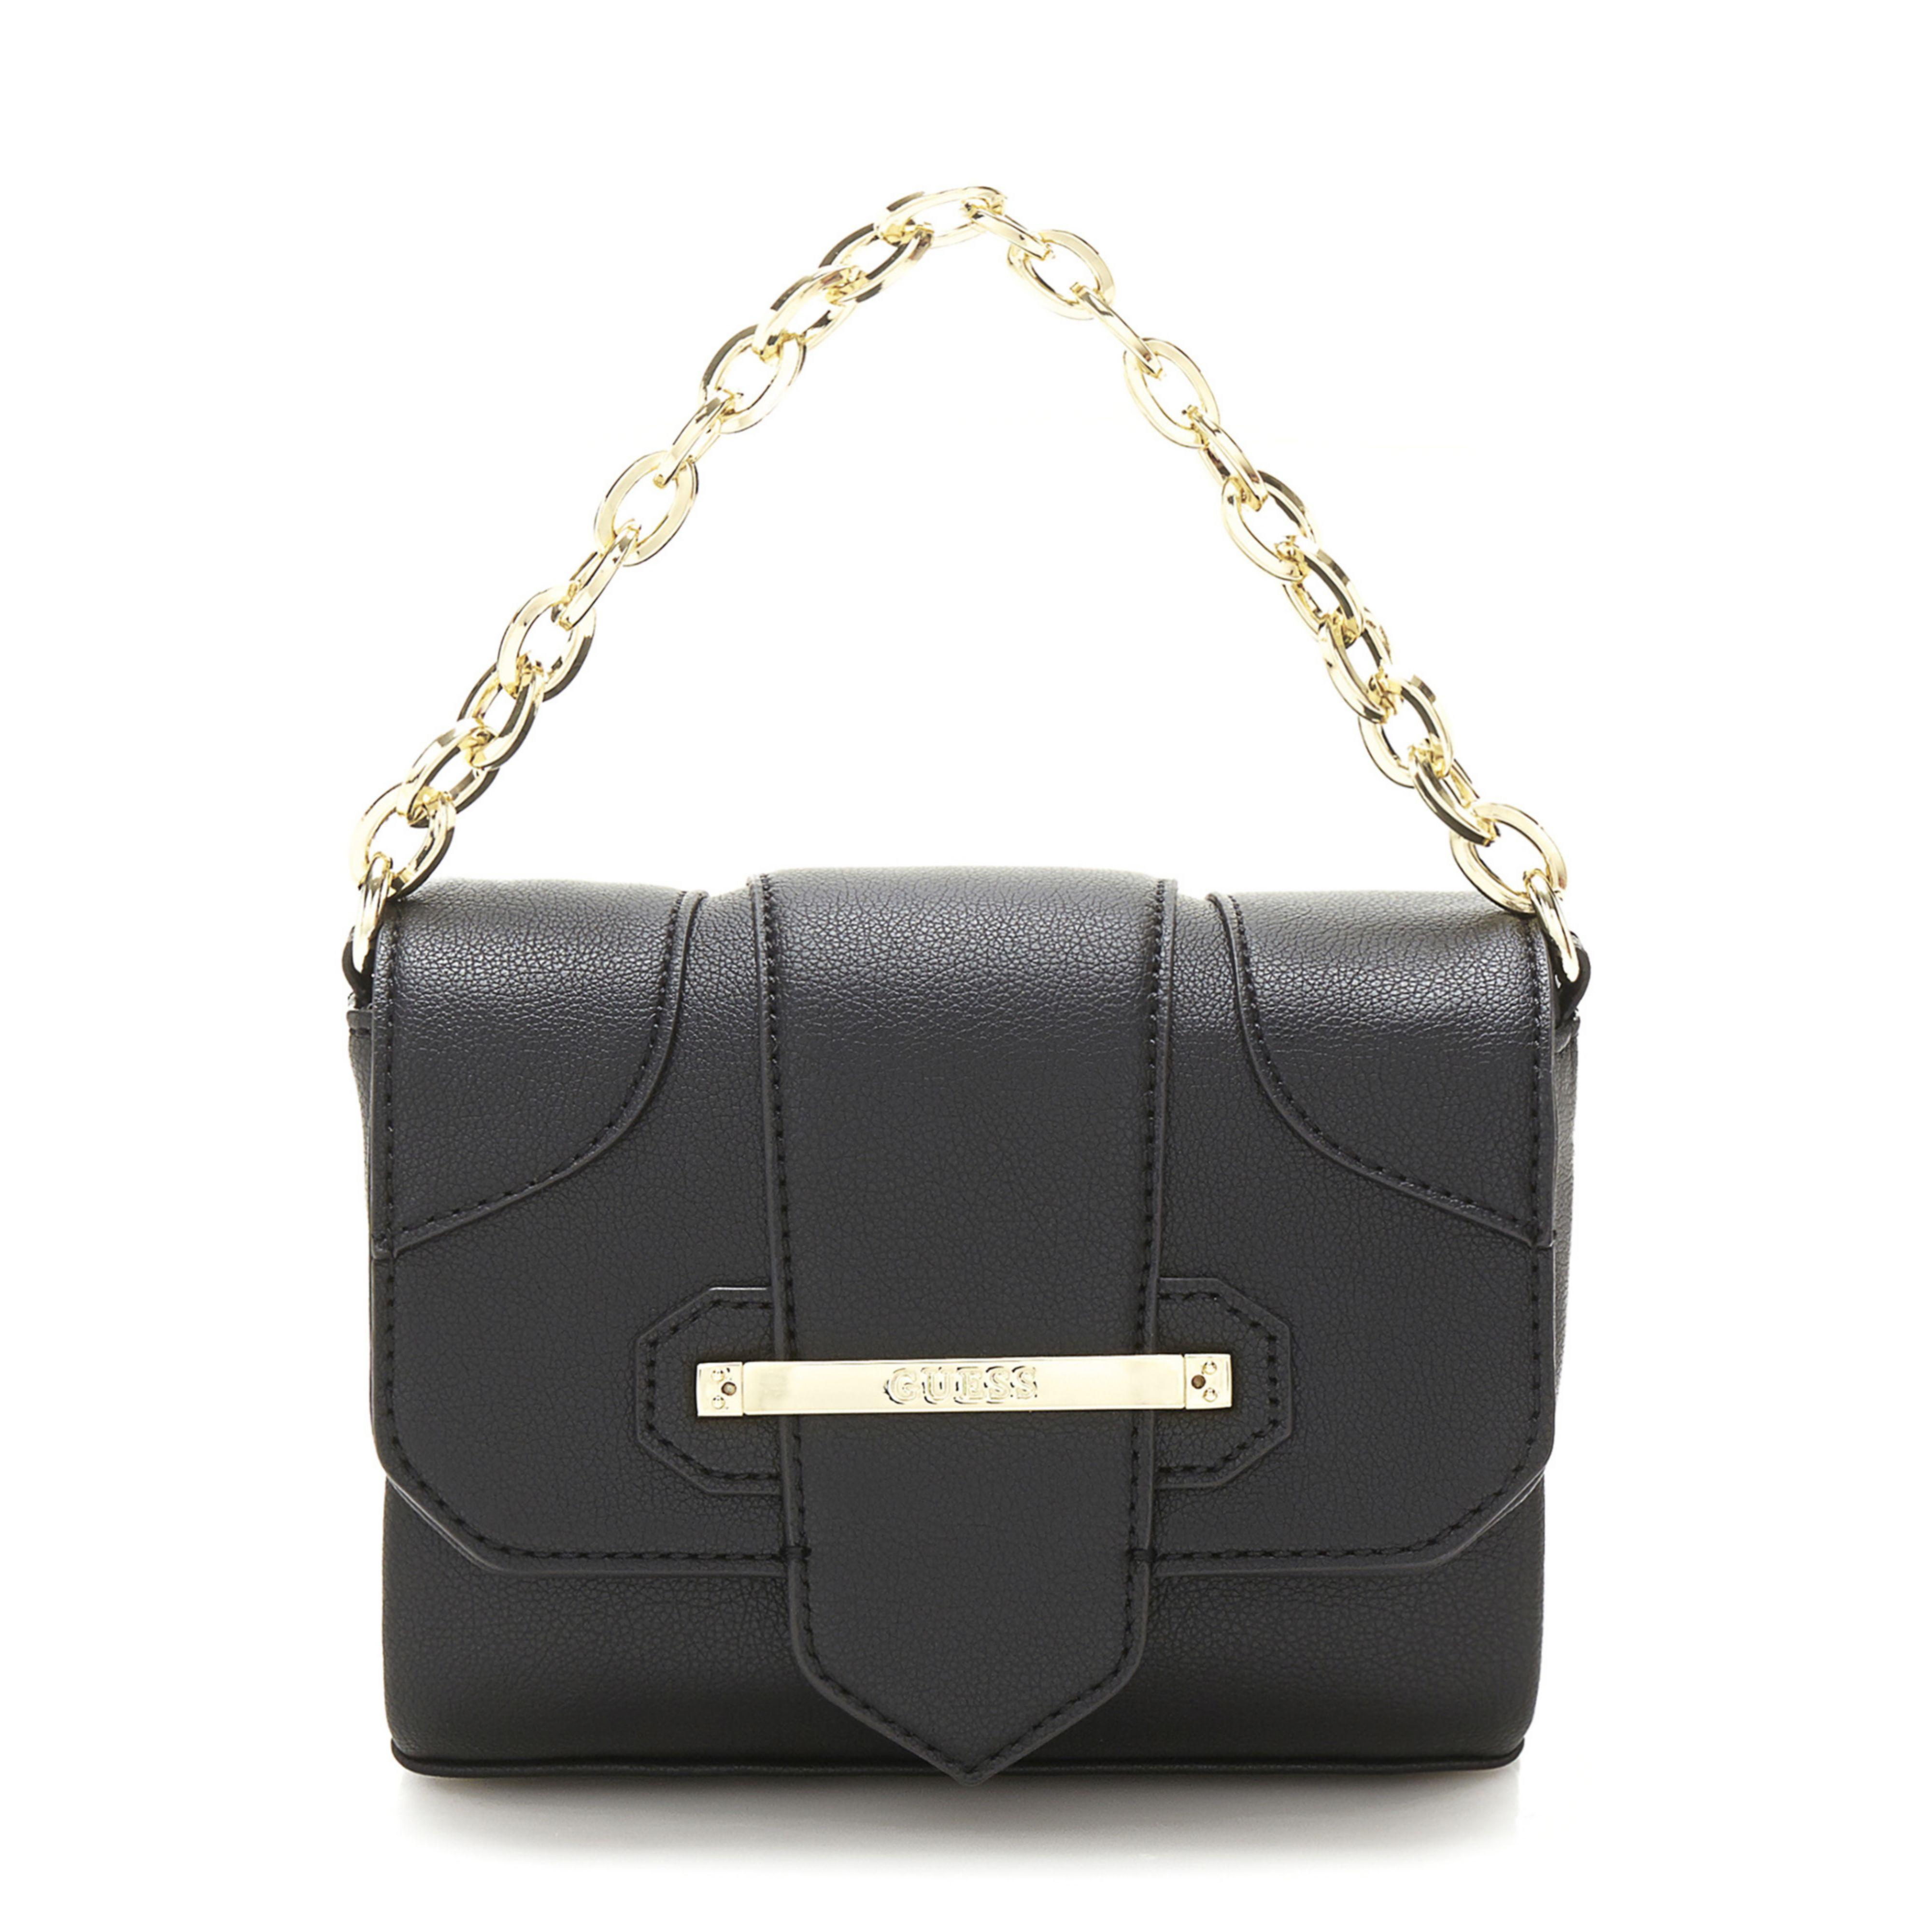 e8b14545c7b4 Guess Crossbody Bag Sale Uk   Stanford Center for Opportunity Policy ...